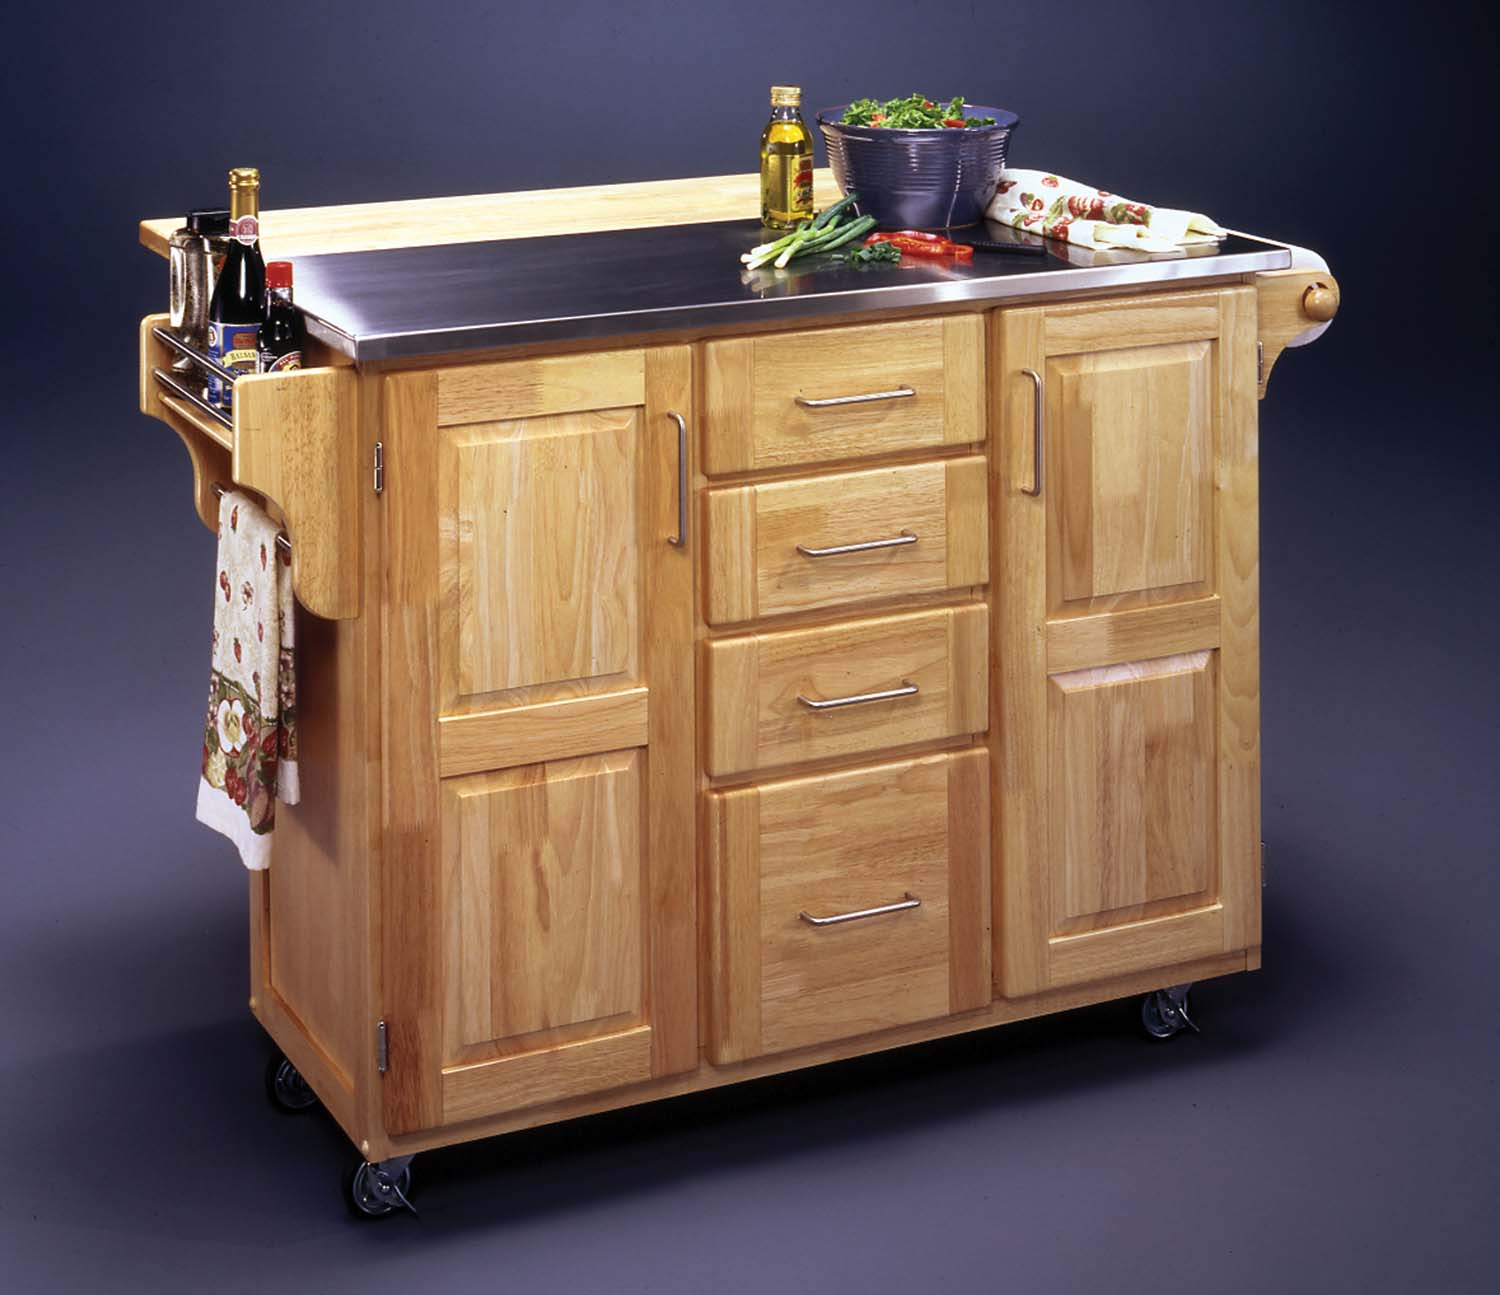 Home styles kitchen cart with drop leaf breakfast bar kitchen island